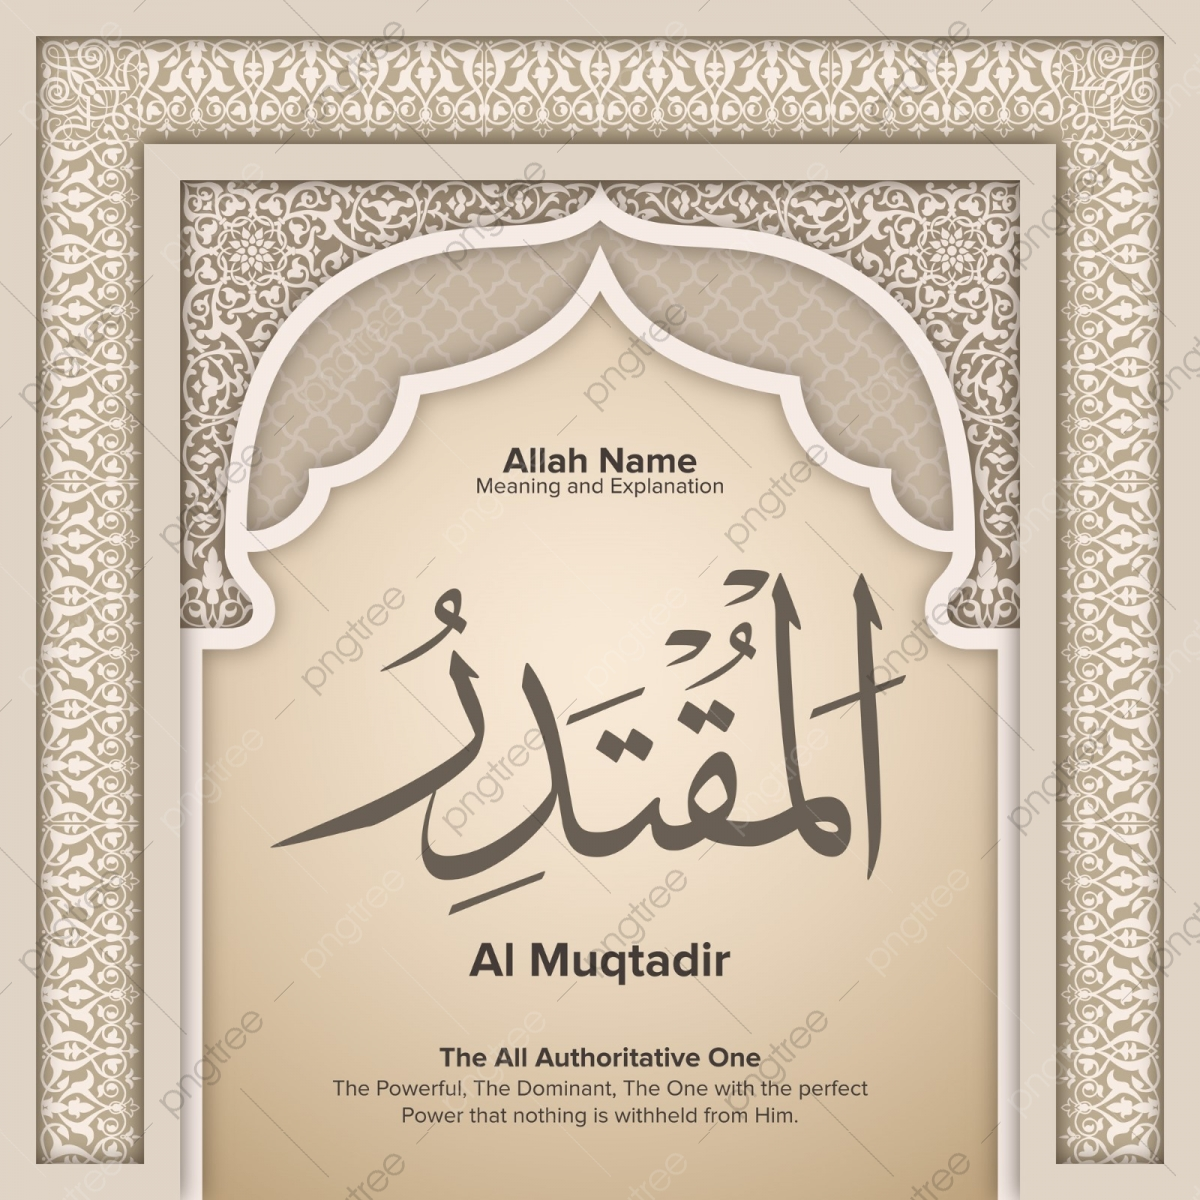 Al Muqtadir ,99 Names Of Allah With Meaning And Explanation, Al